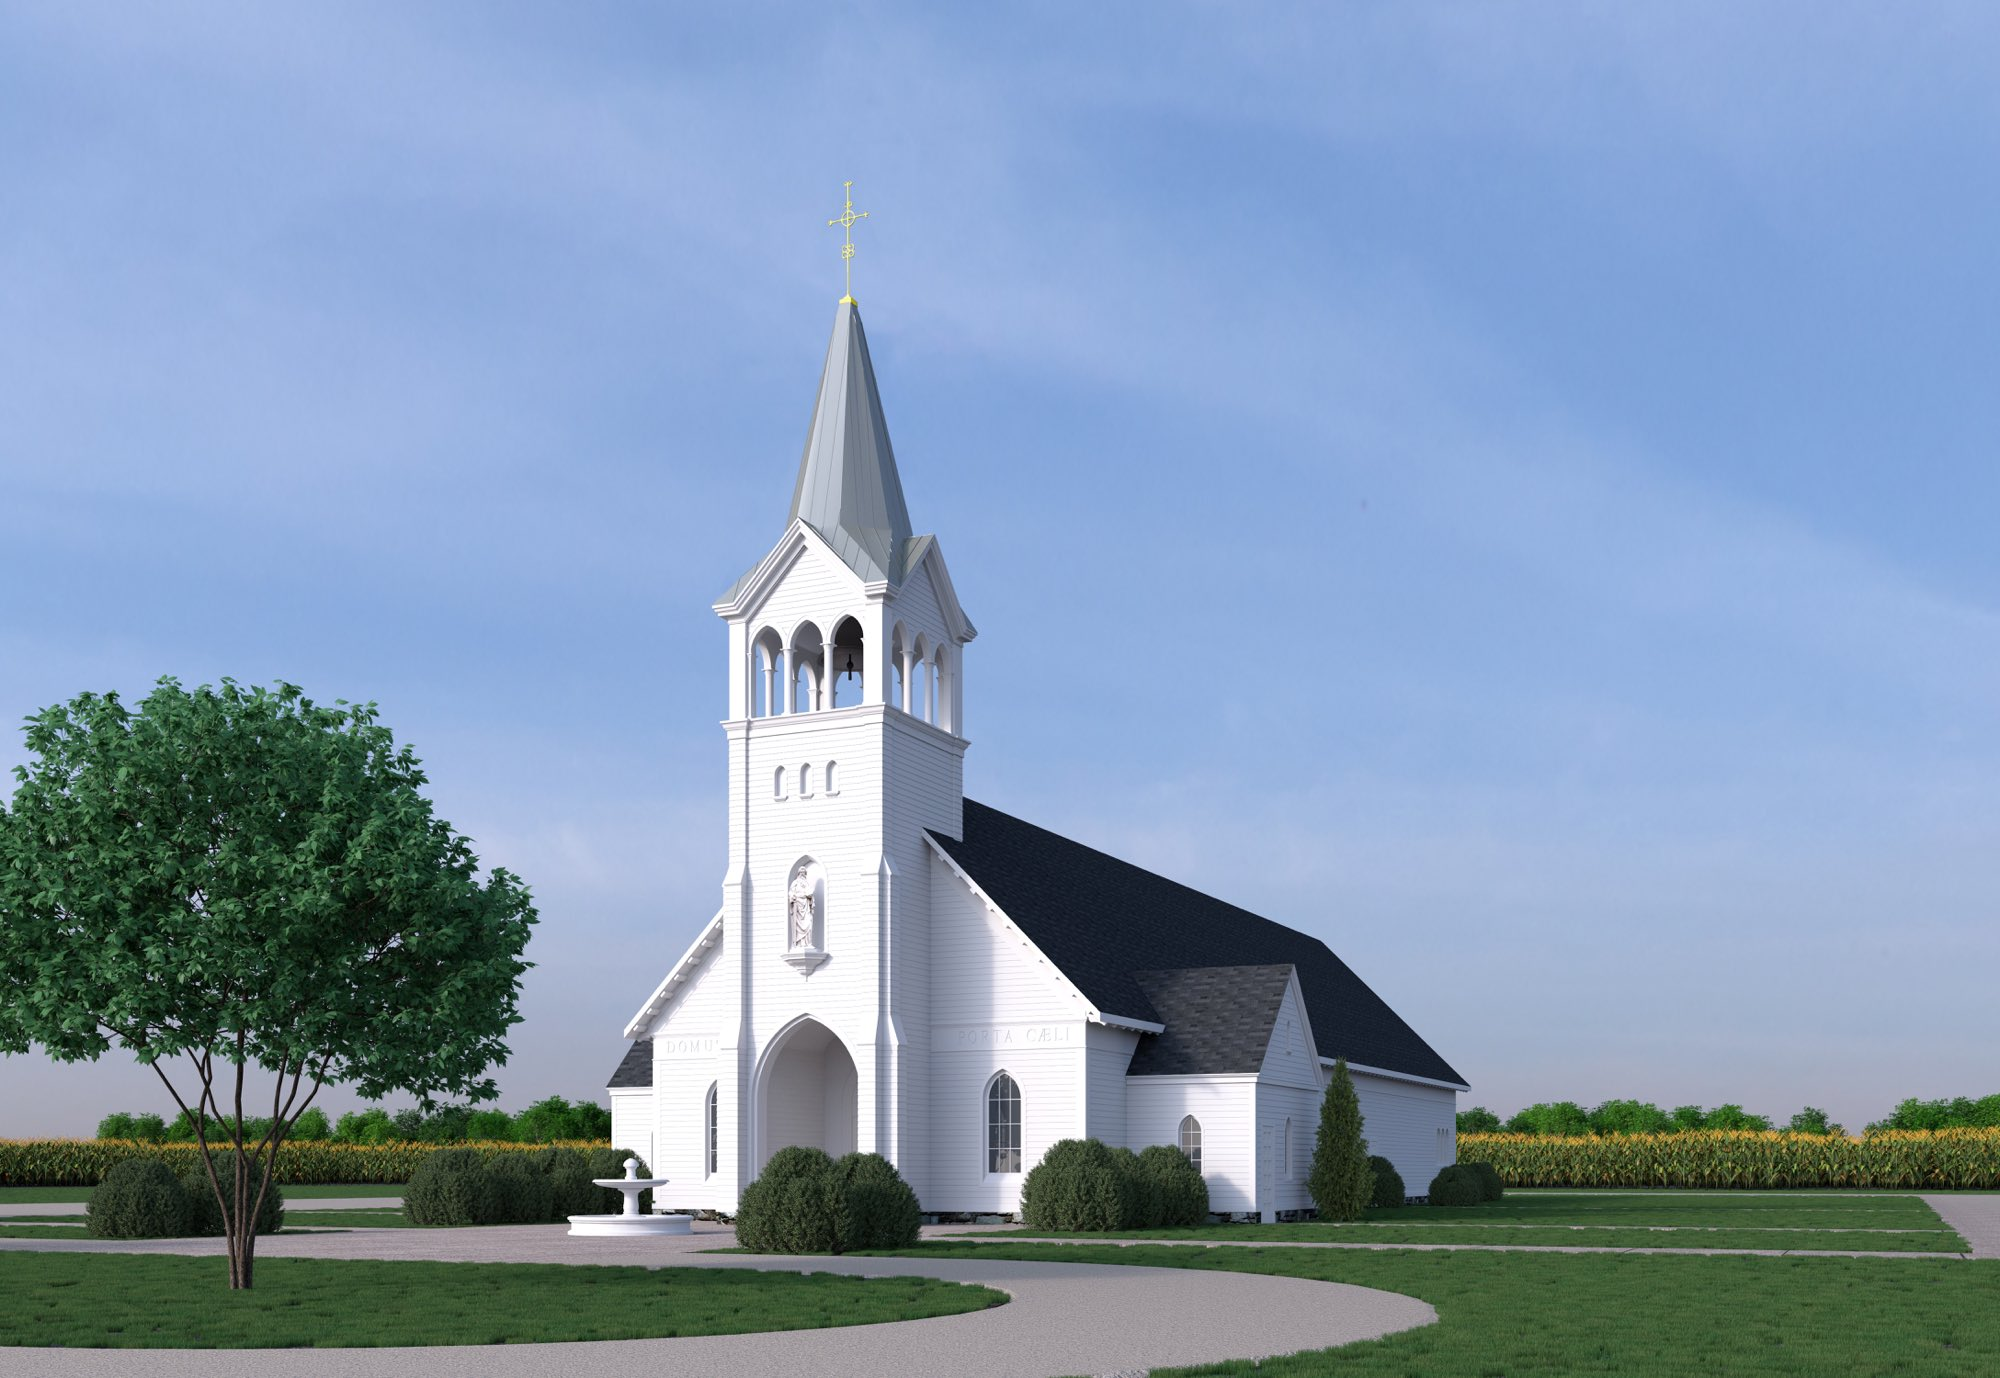 Wooden church architecture arcade columns and steeple statue niche and buttresses white wood siding by Harrison Design